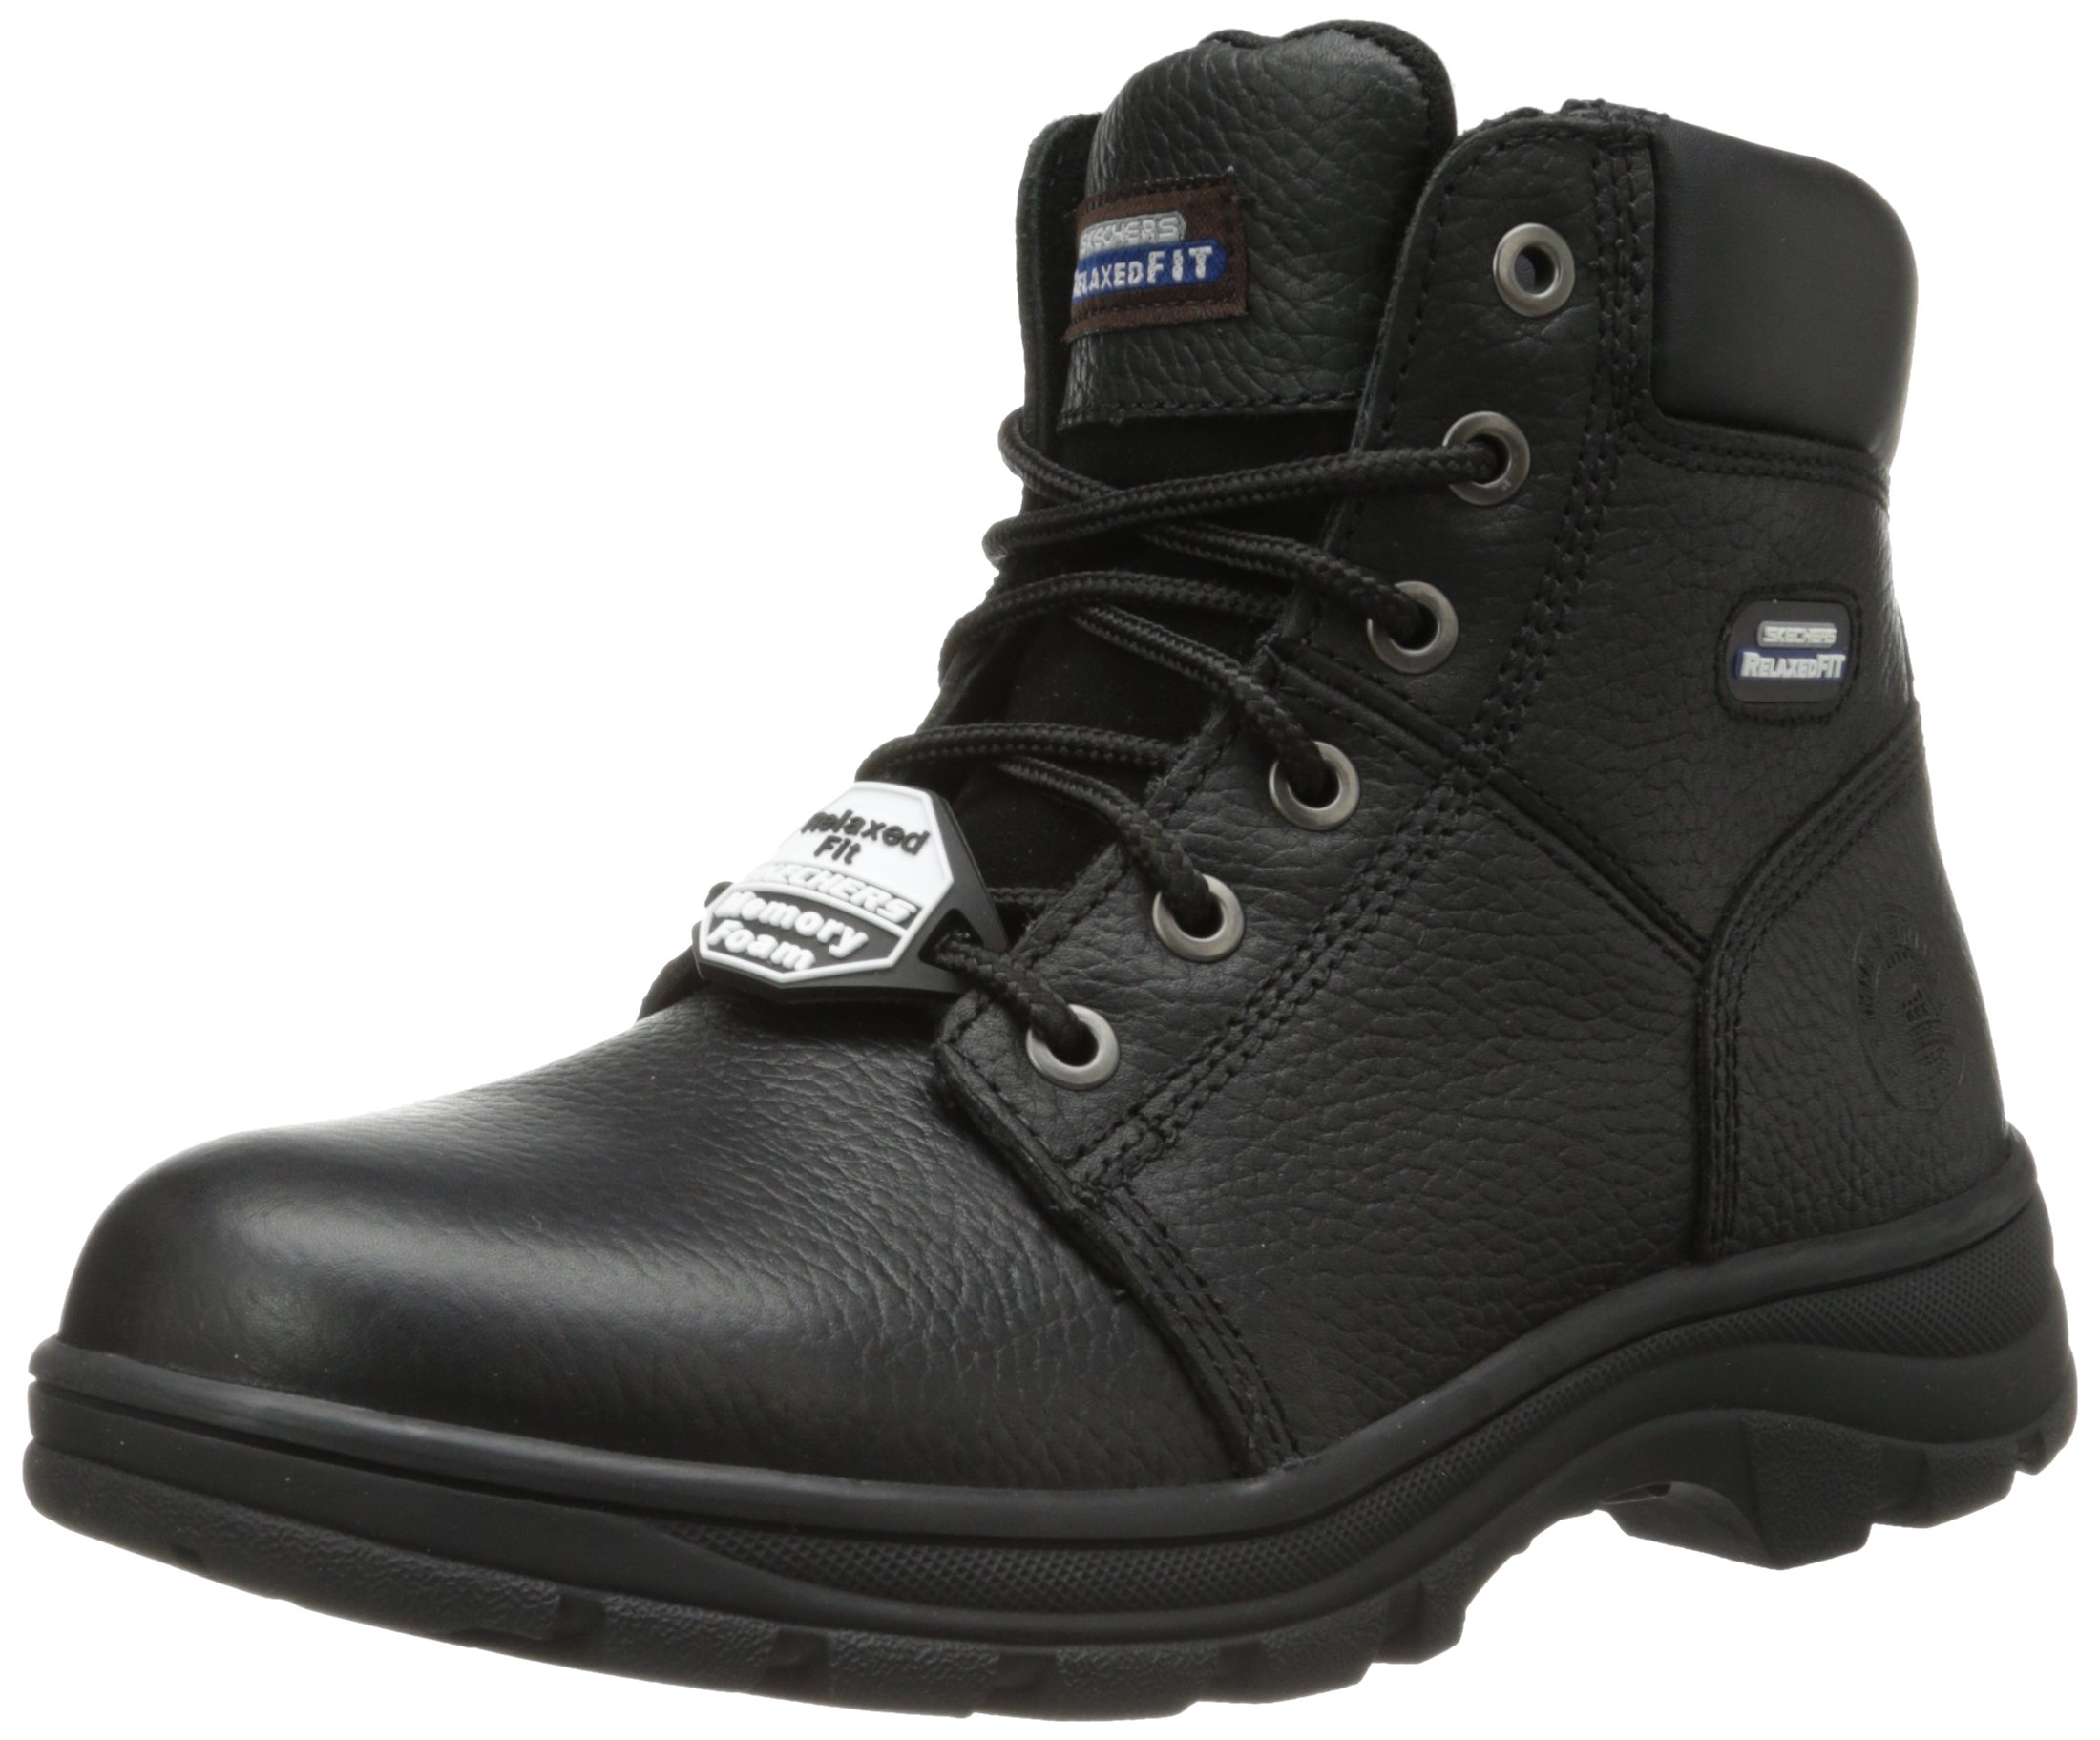 Skechers for Work Men's Workshire Condor Work Boot,Black,13 M US